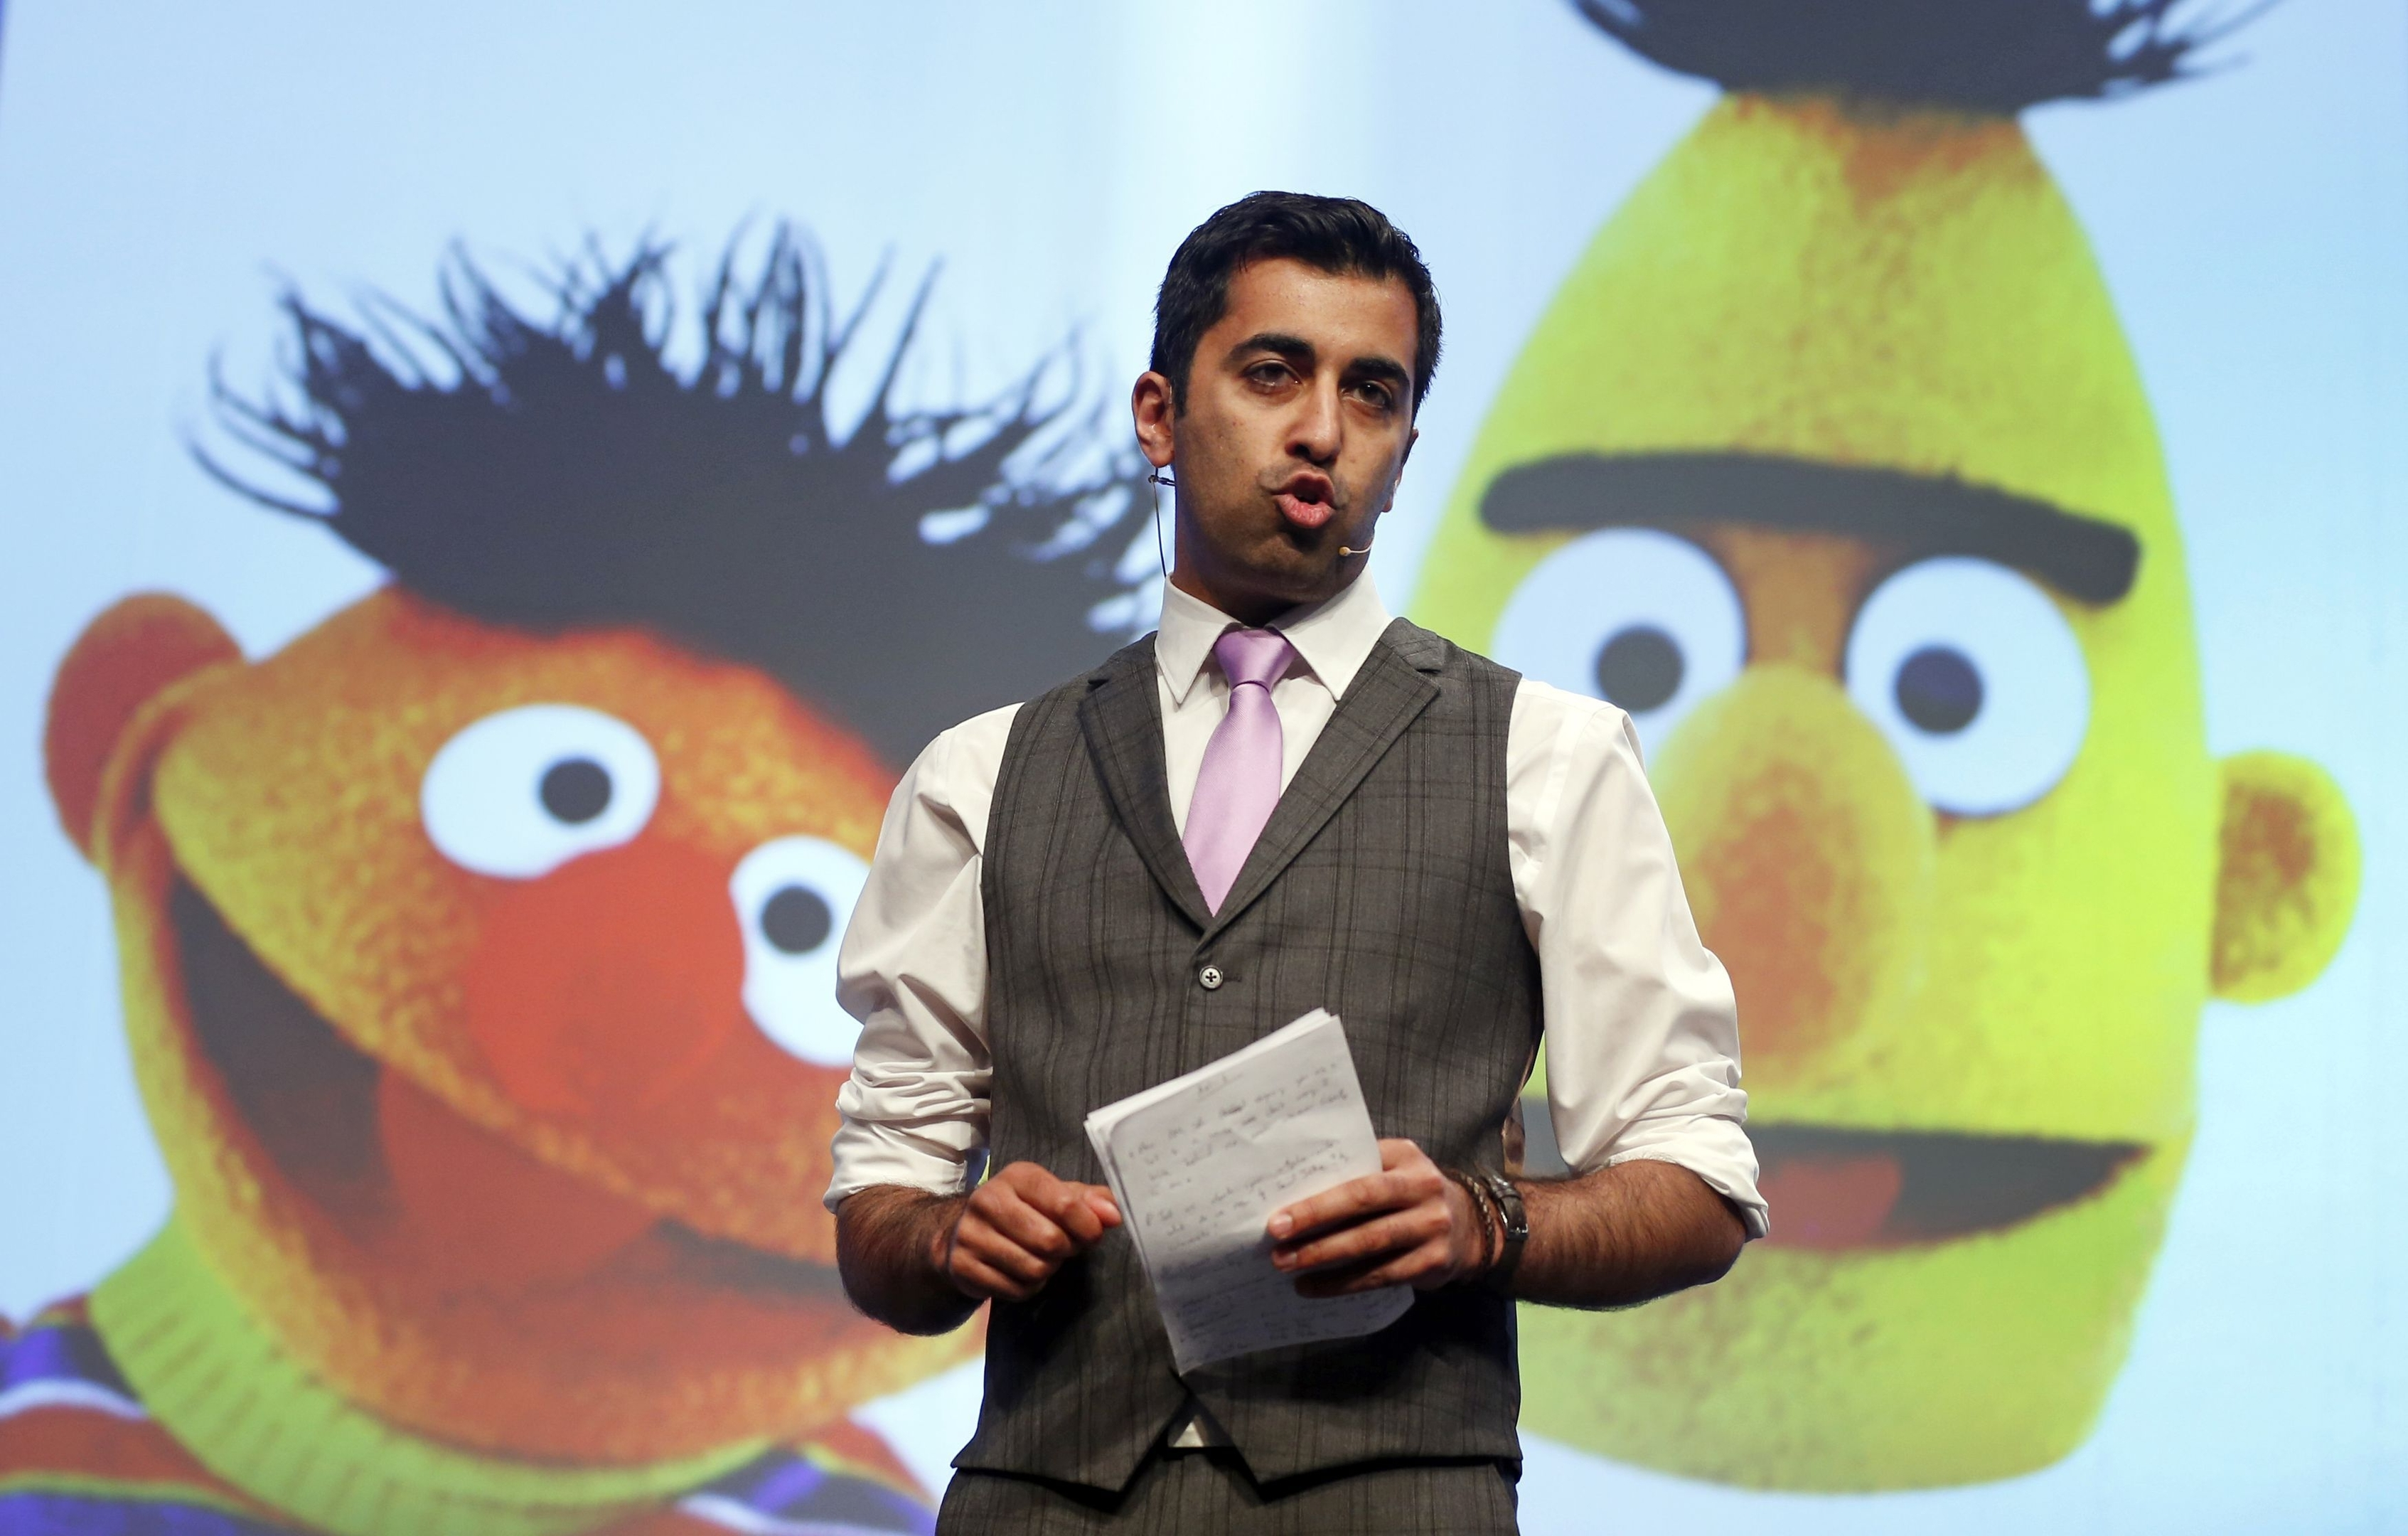 Humza Yousaf MSP during the SNP National conference at Aberdeen Exhibition and Conference Centre in Scotland.